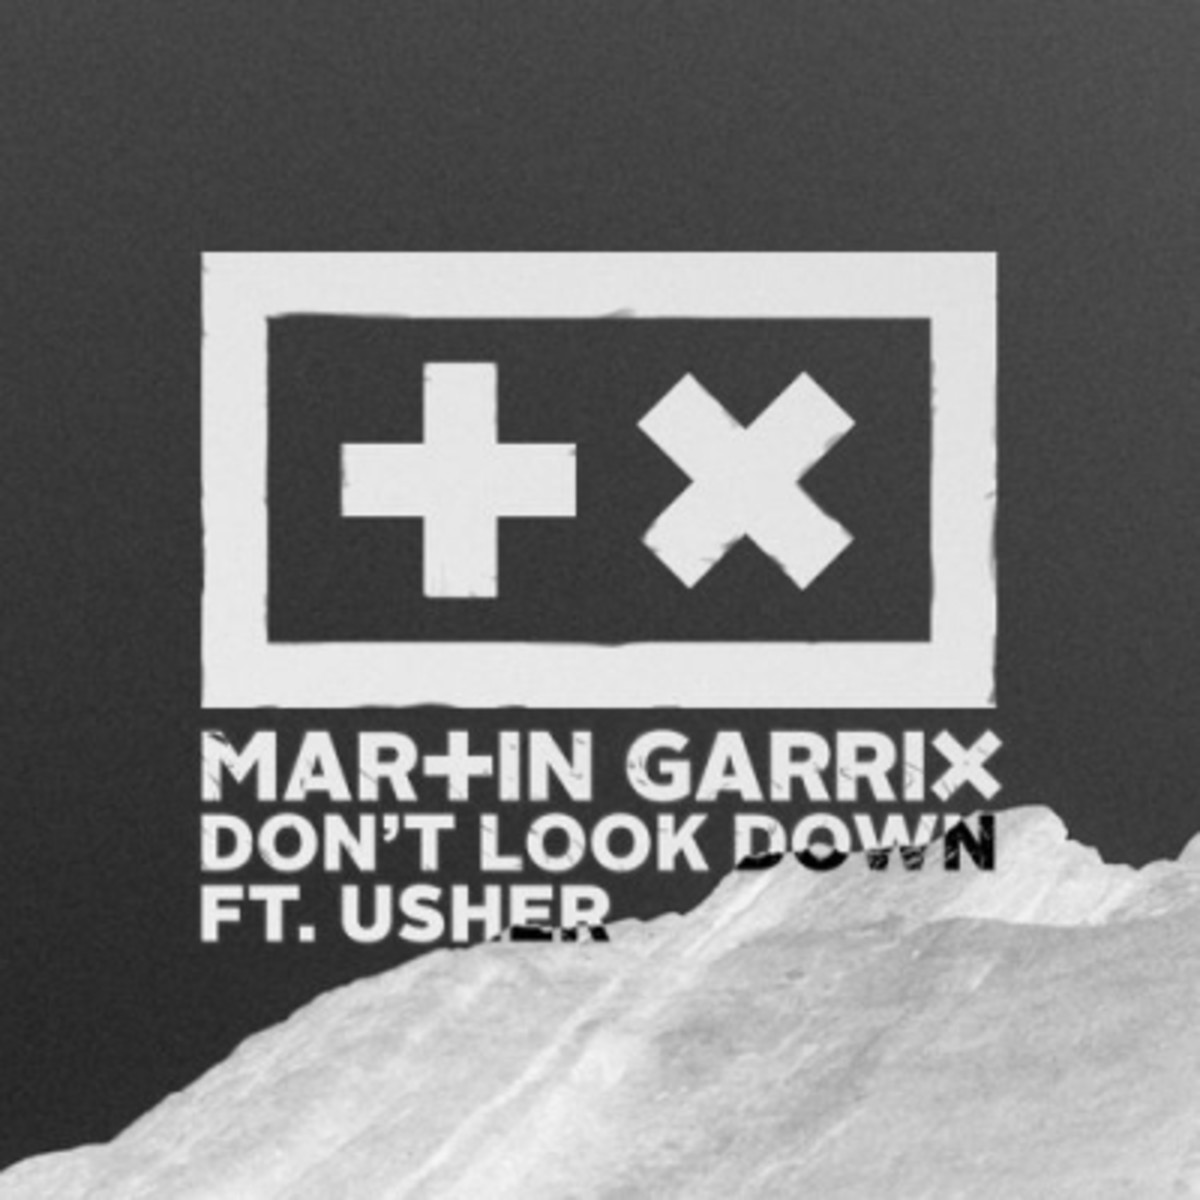 martin-garrix-dont-look-down.jpg